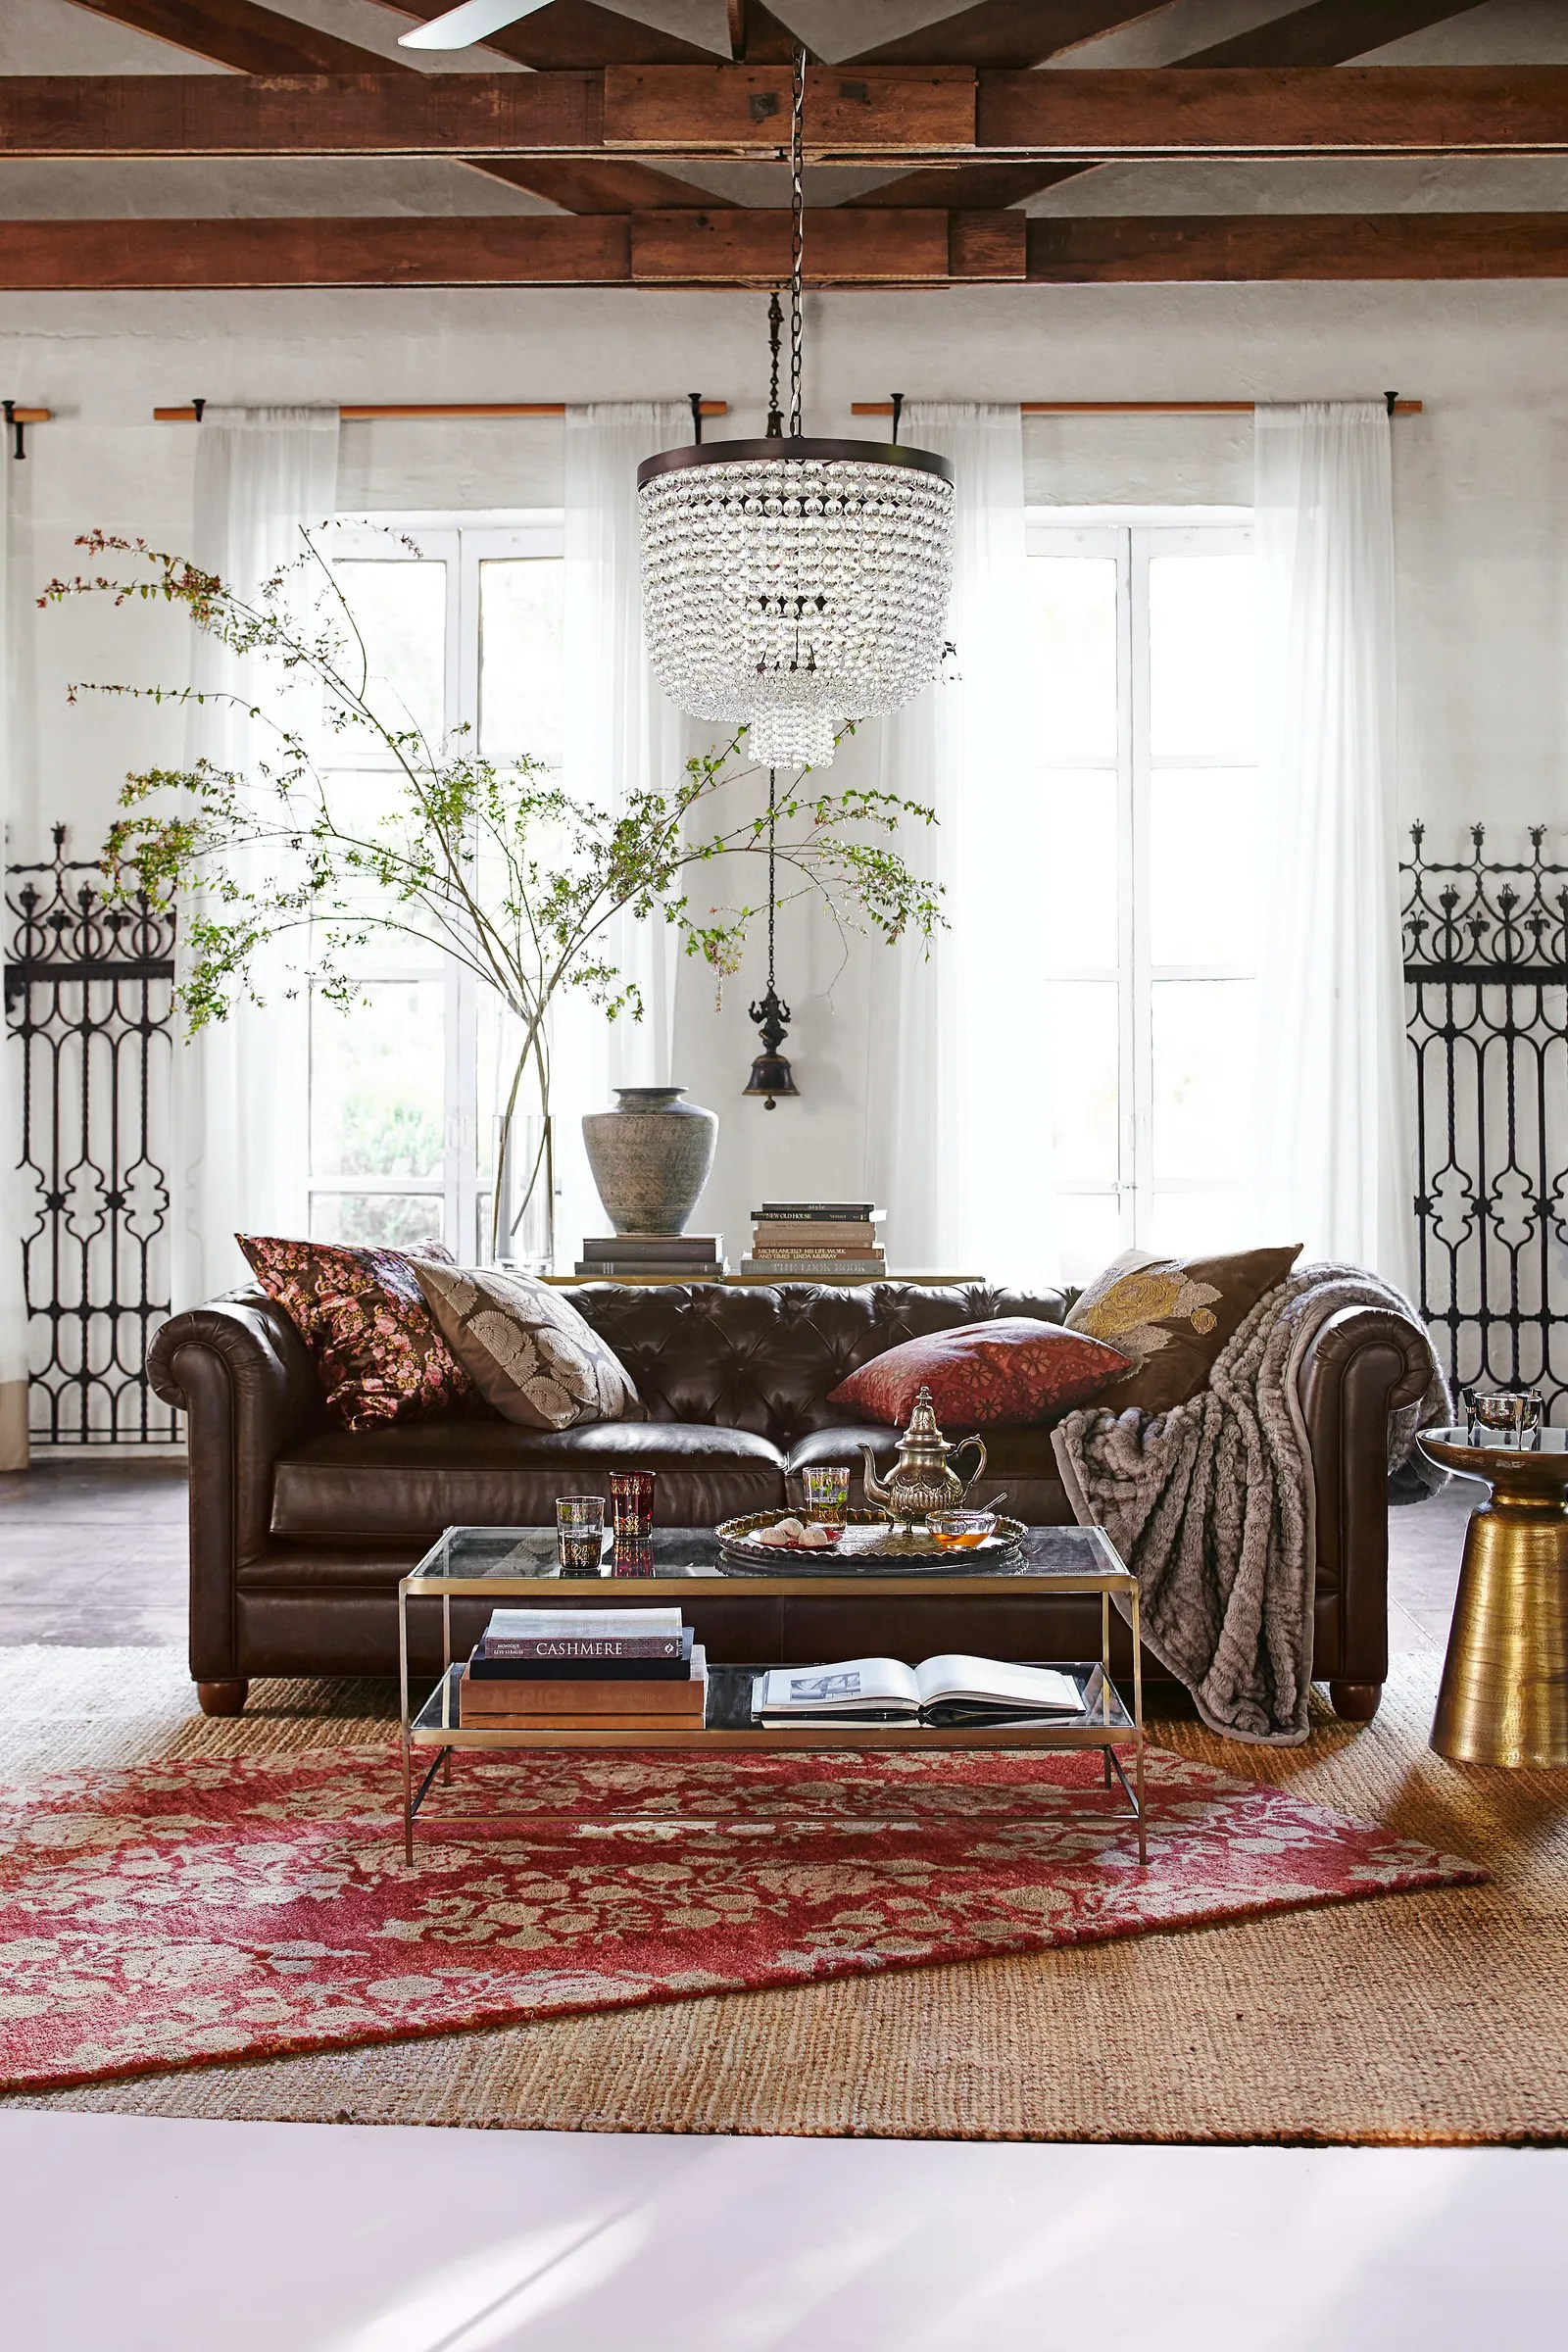 Farmhouse Living Room Add Jewel Tones To Your Home With Pottery Barn's